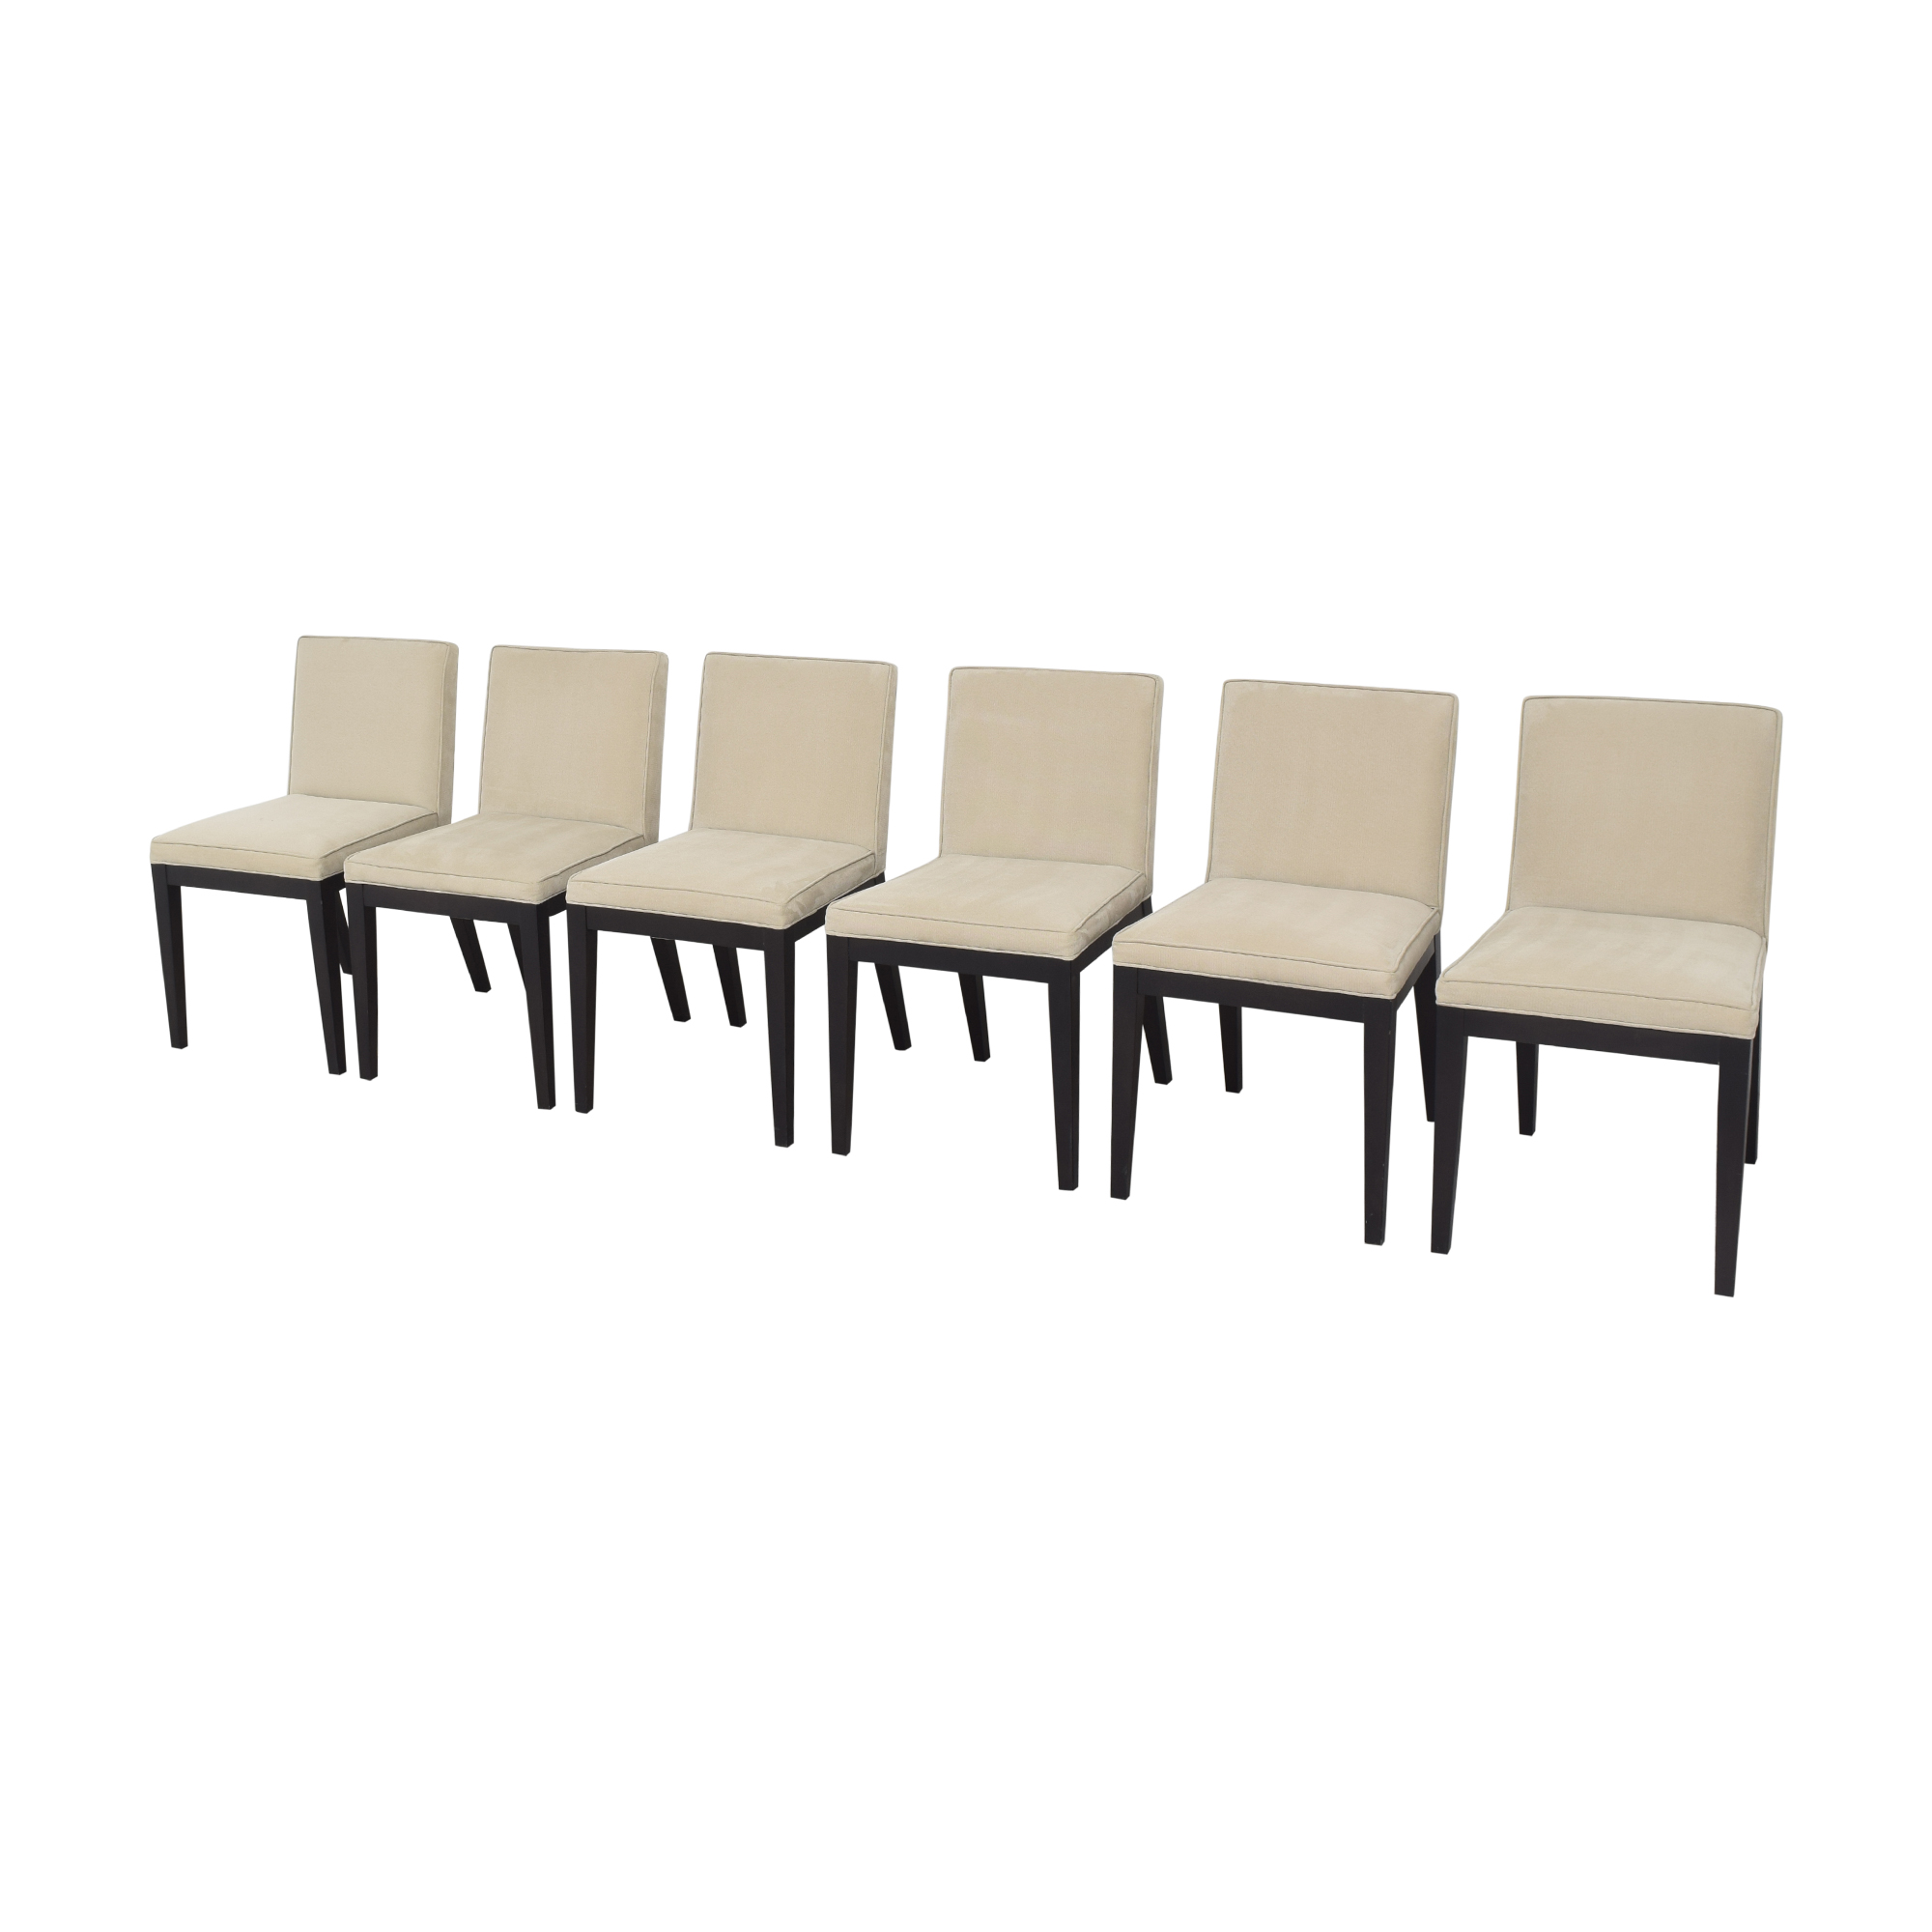 Room & Board Room & Board Ansel Dining Chairs nyc